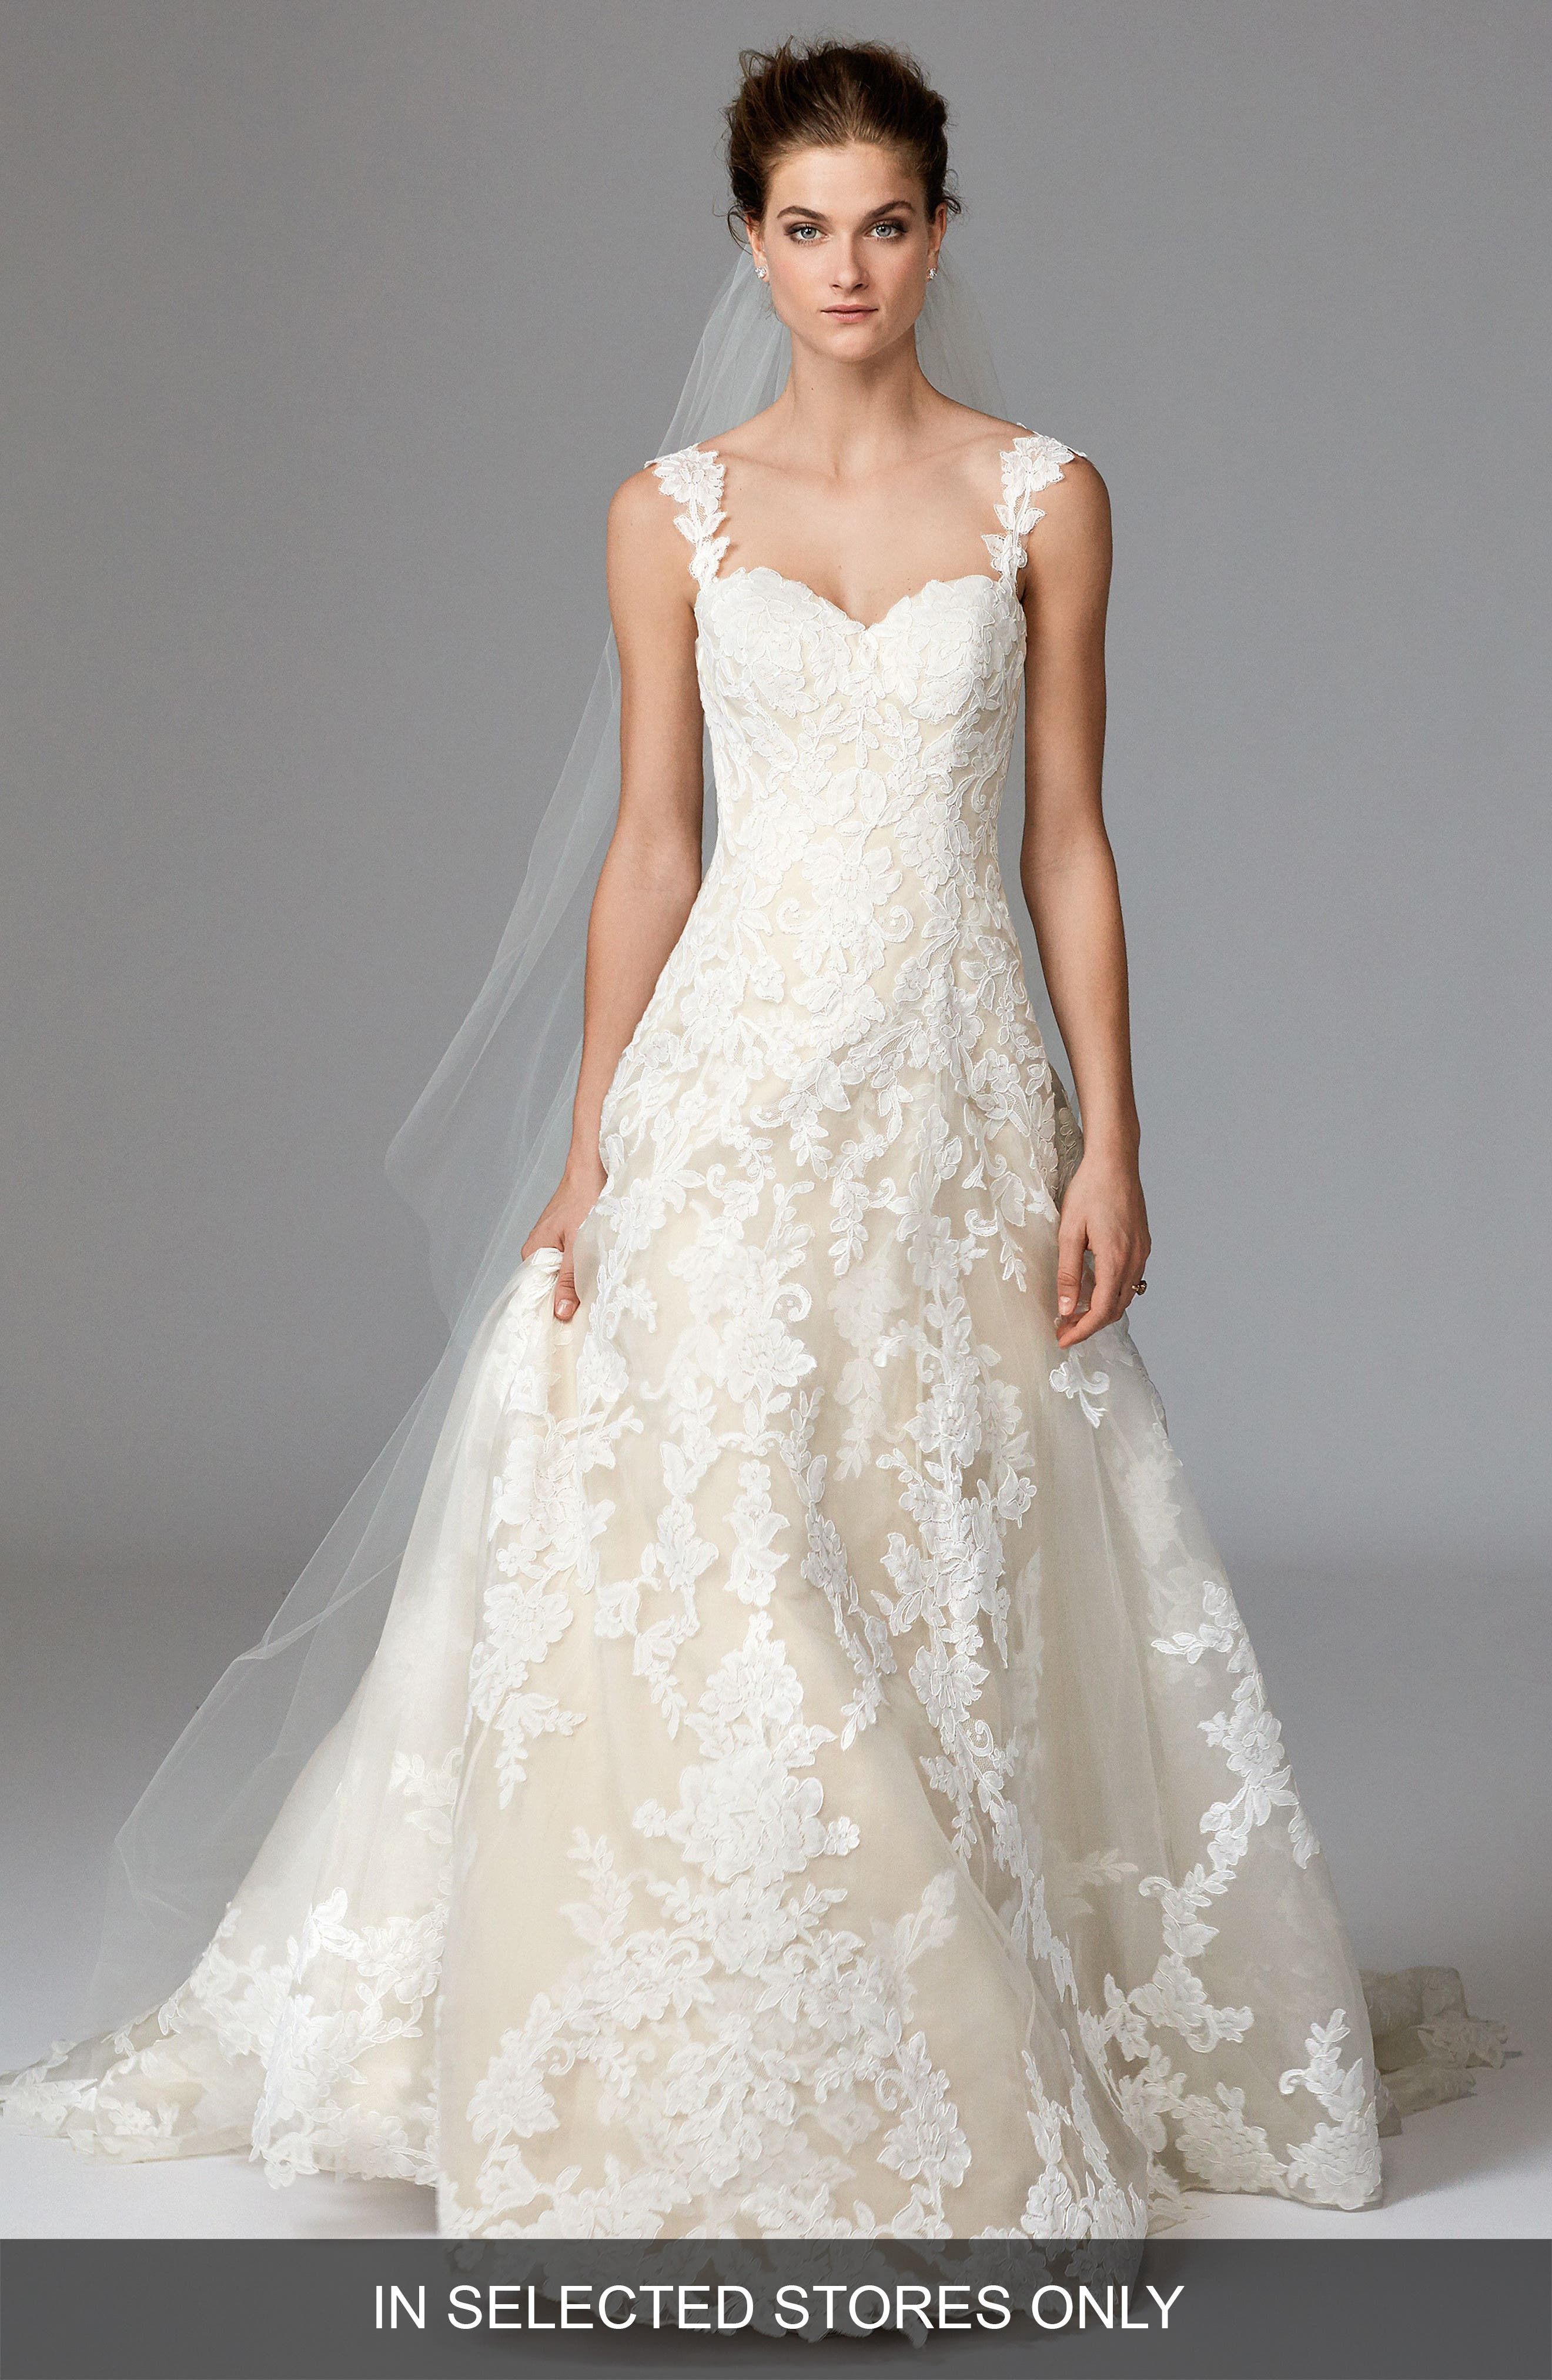 Aven Lace & Organza A-Line Gown,                         Main,                         color, Ivory/ Nude